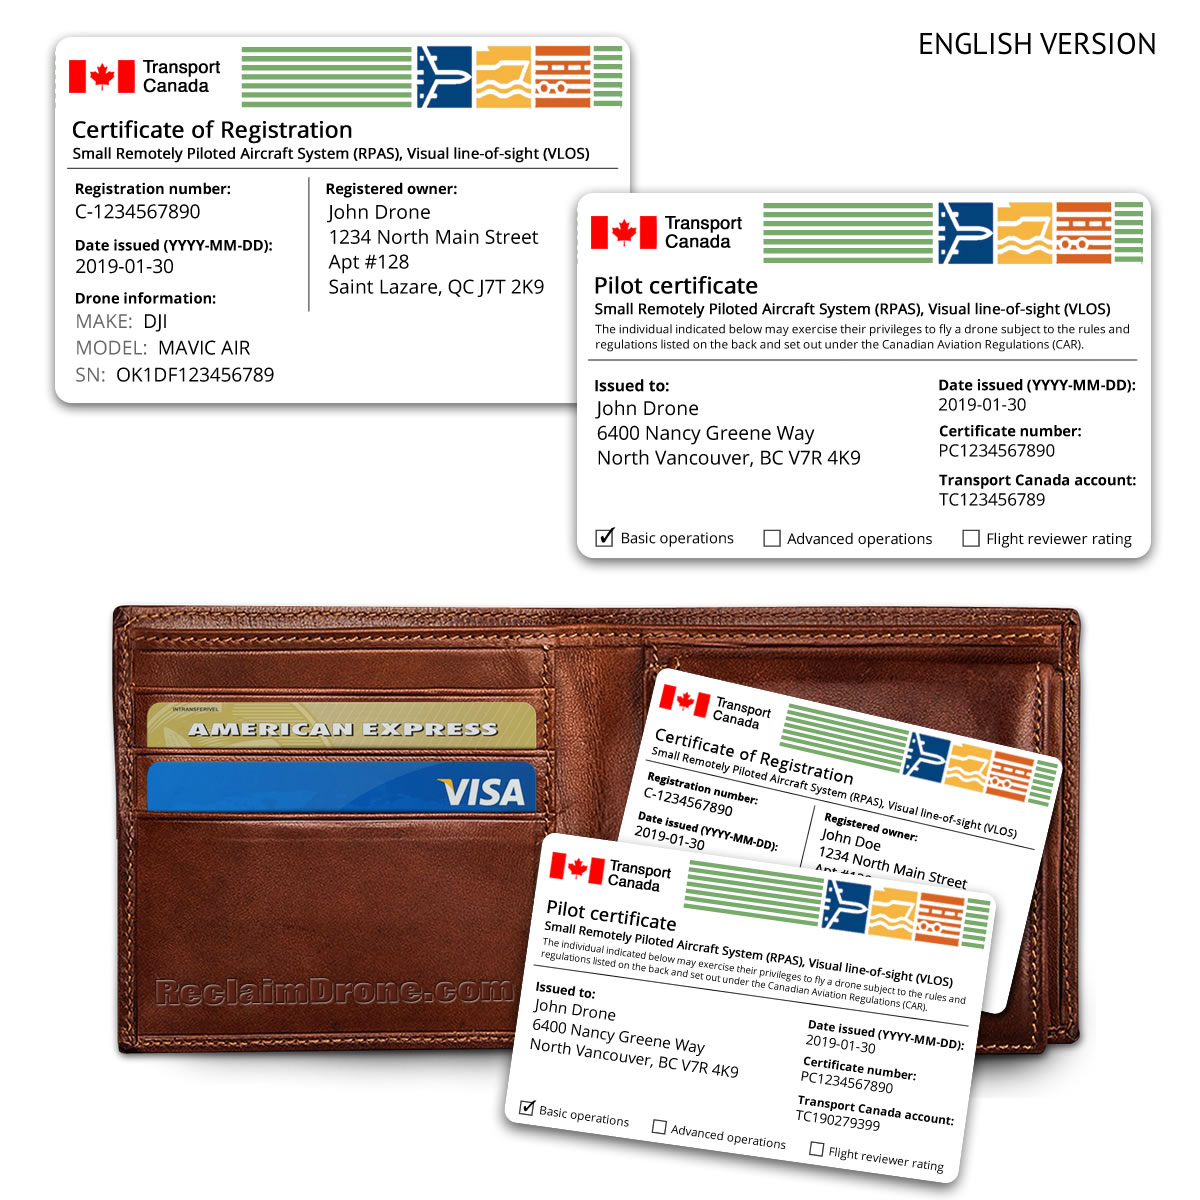 Replica Transport Canada drone pilot certificate and certificate of registration ID cards – English versions